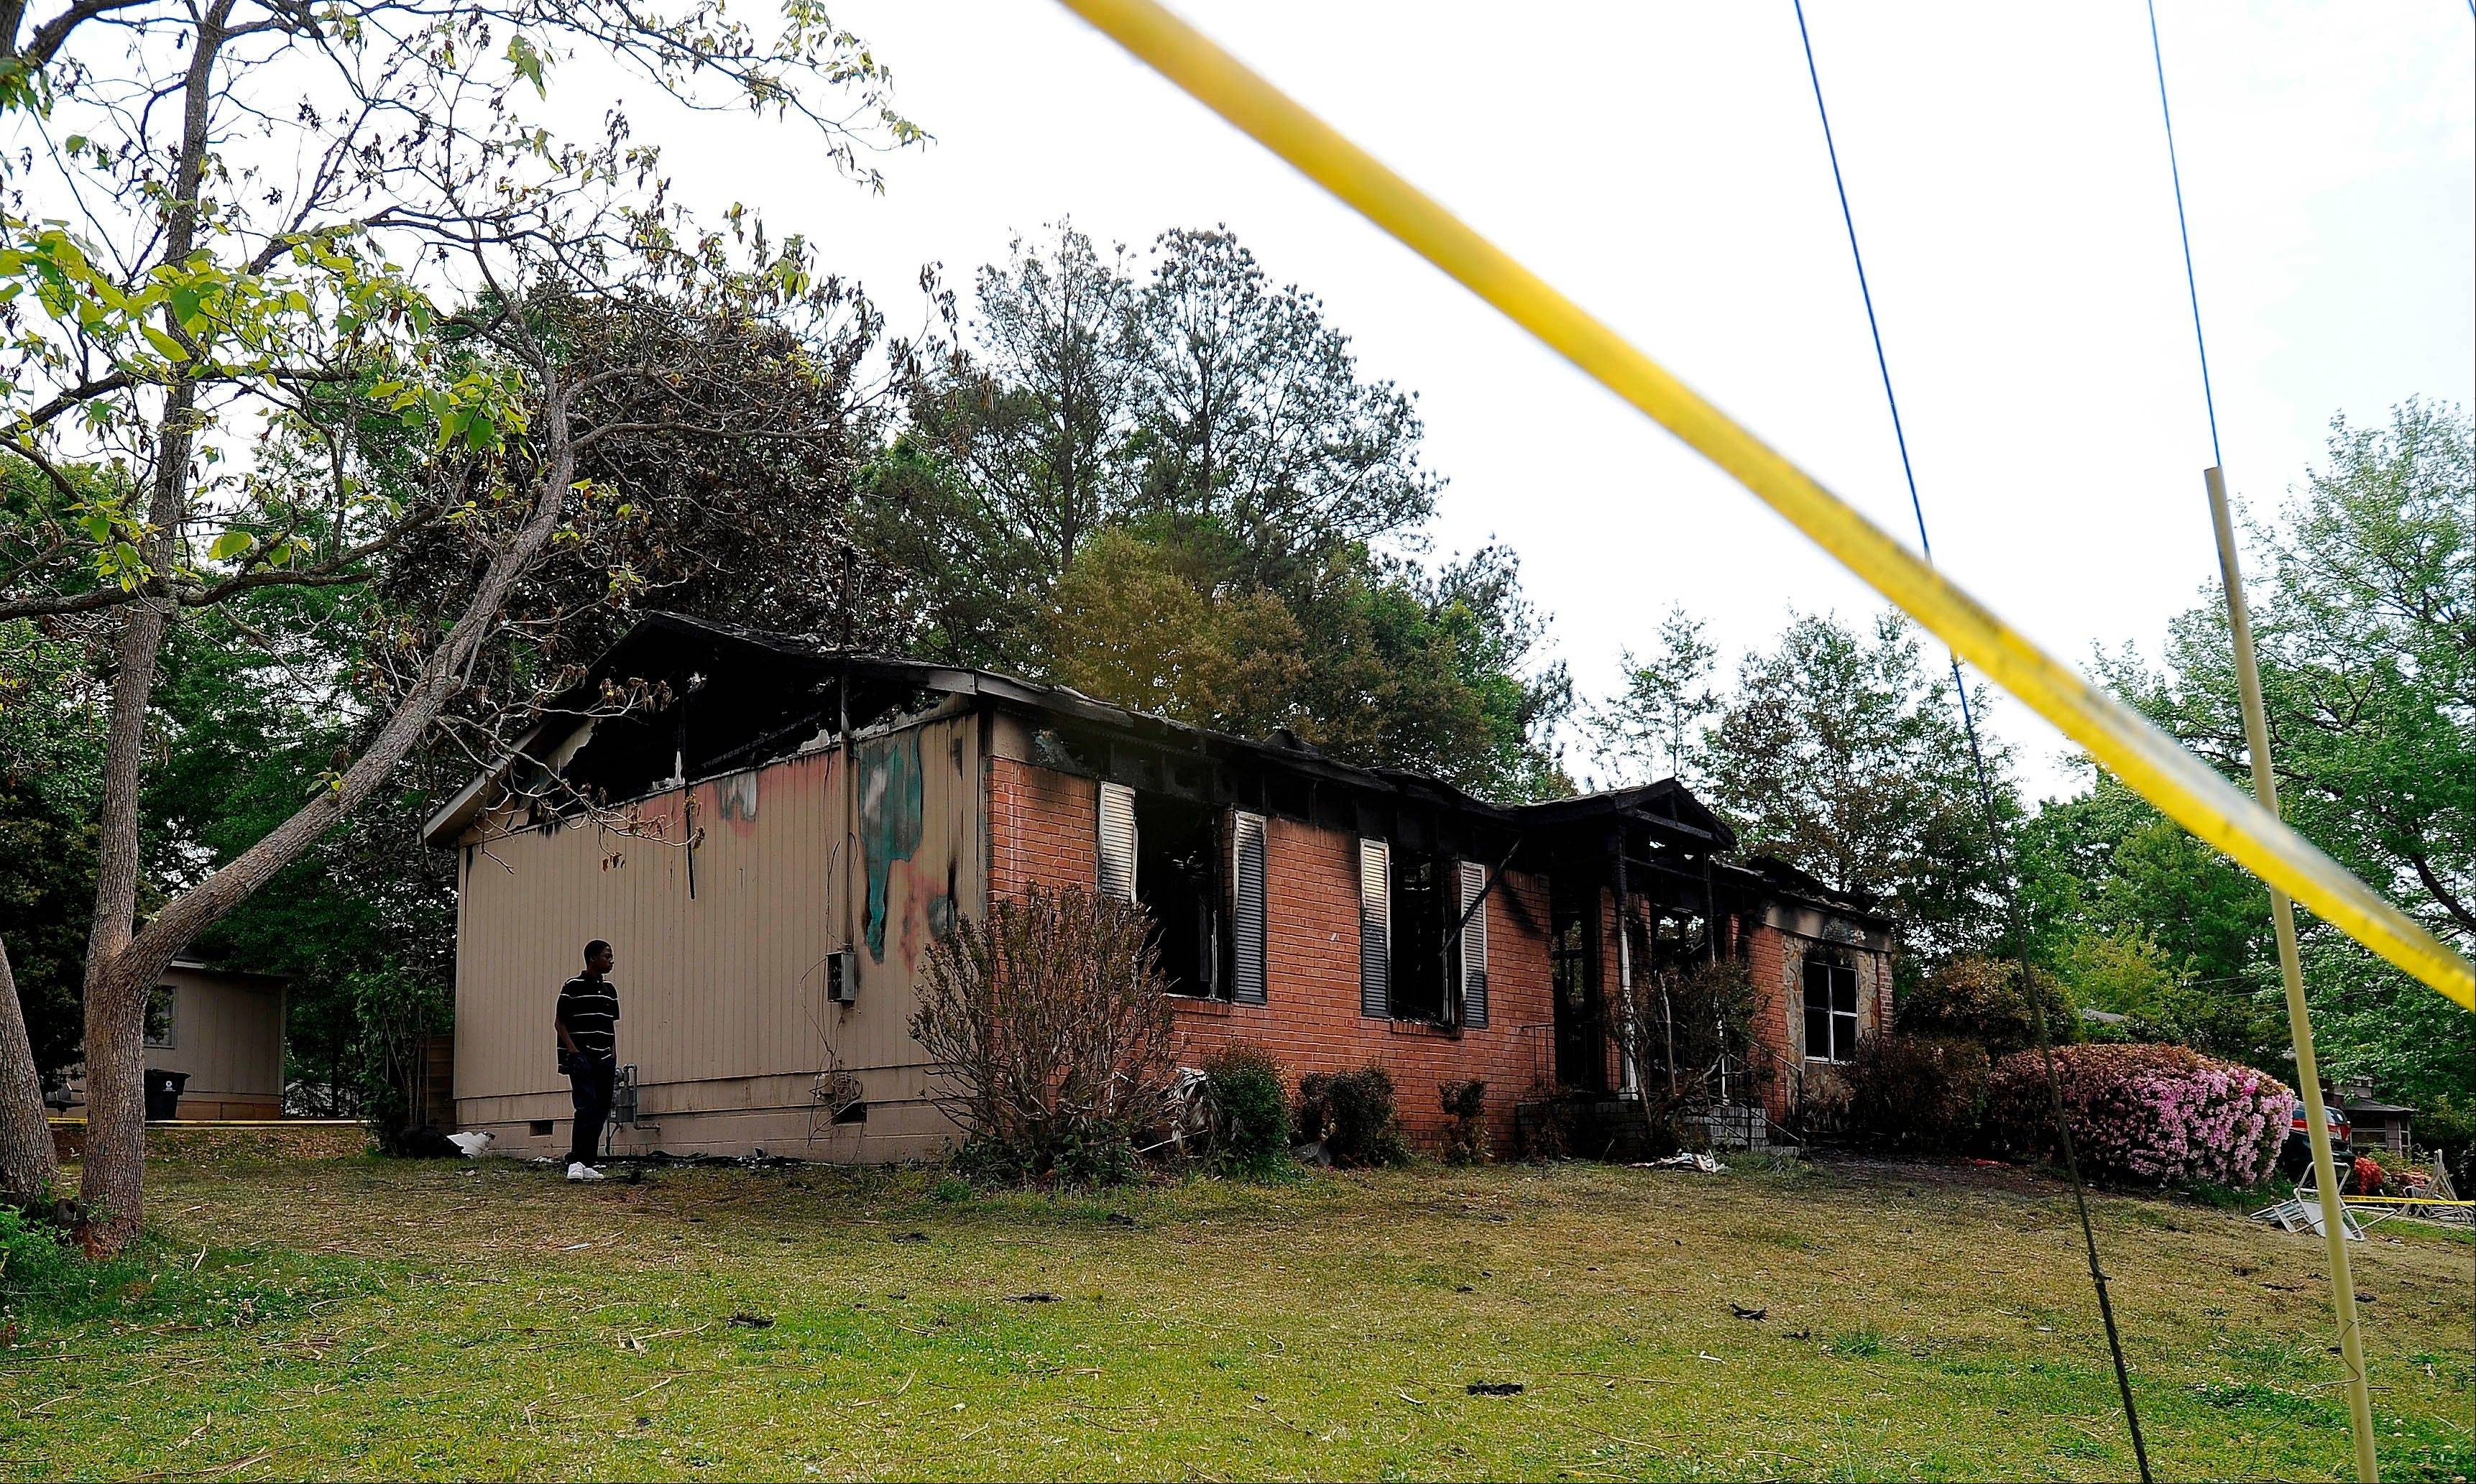 A neighbor walks past the side of a charred single-story house Saturday after a fatal fire killed five, including four children, in Newnan, Ga.